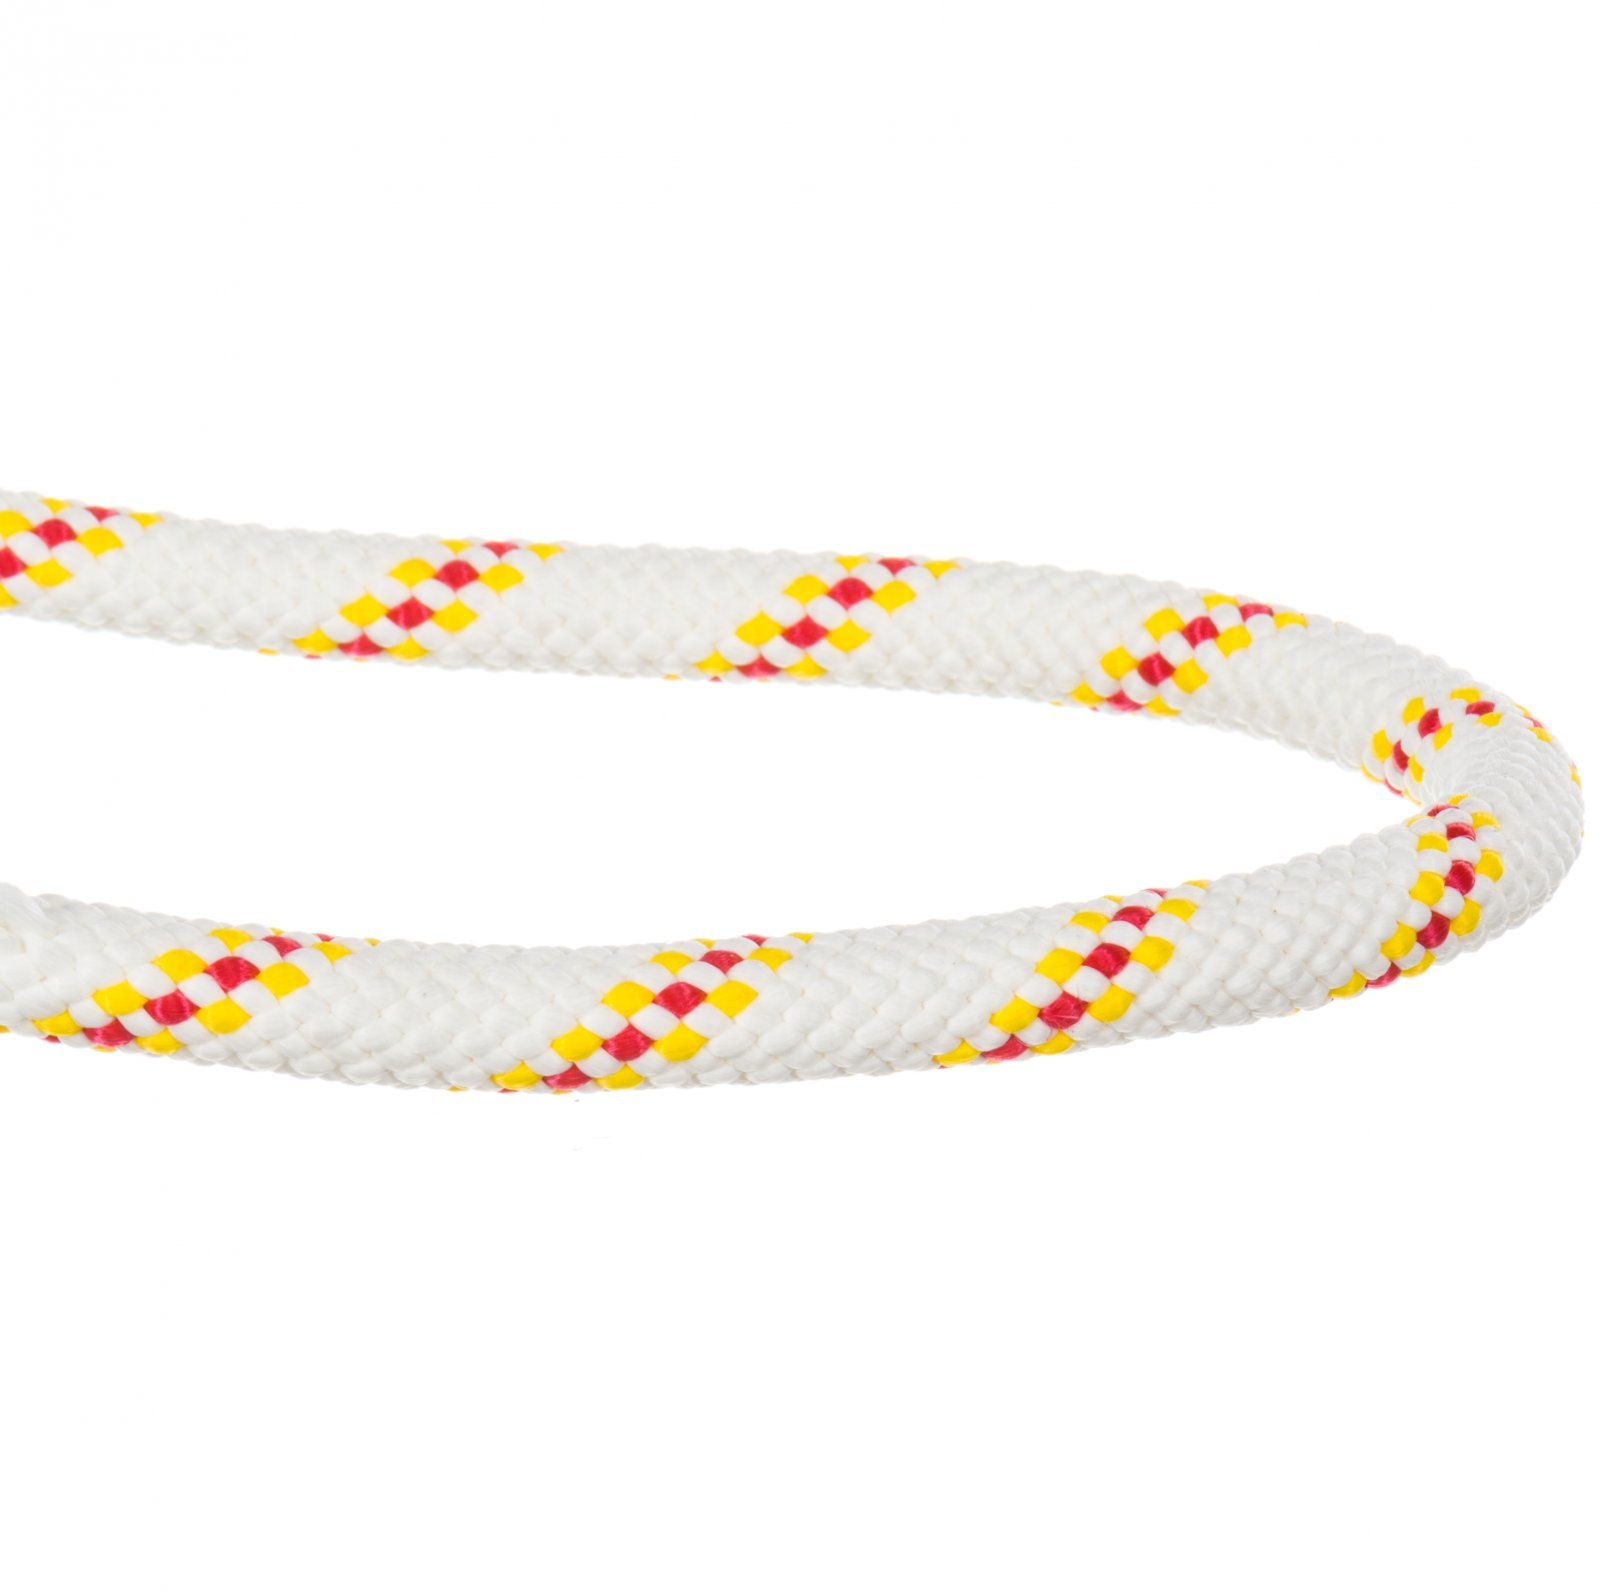 Polypropylene ropes - Lowest prices, free shipping | Maple